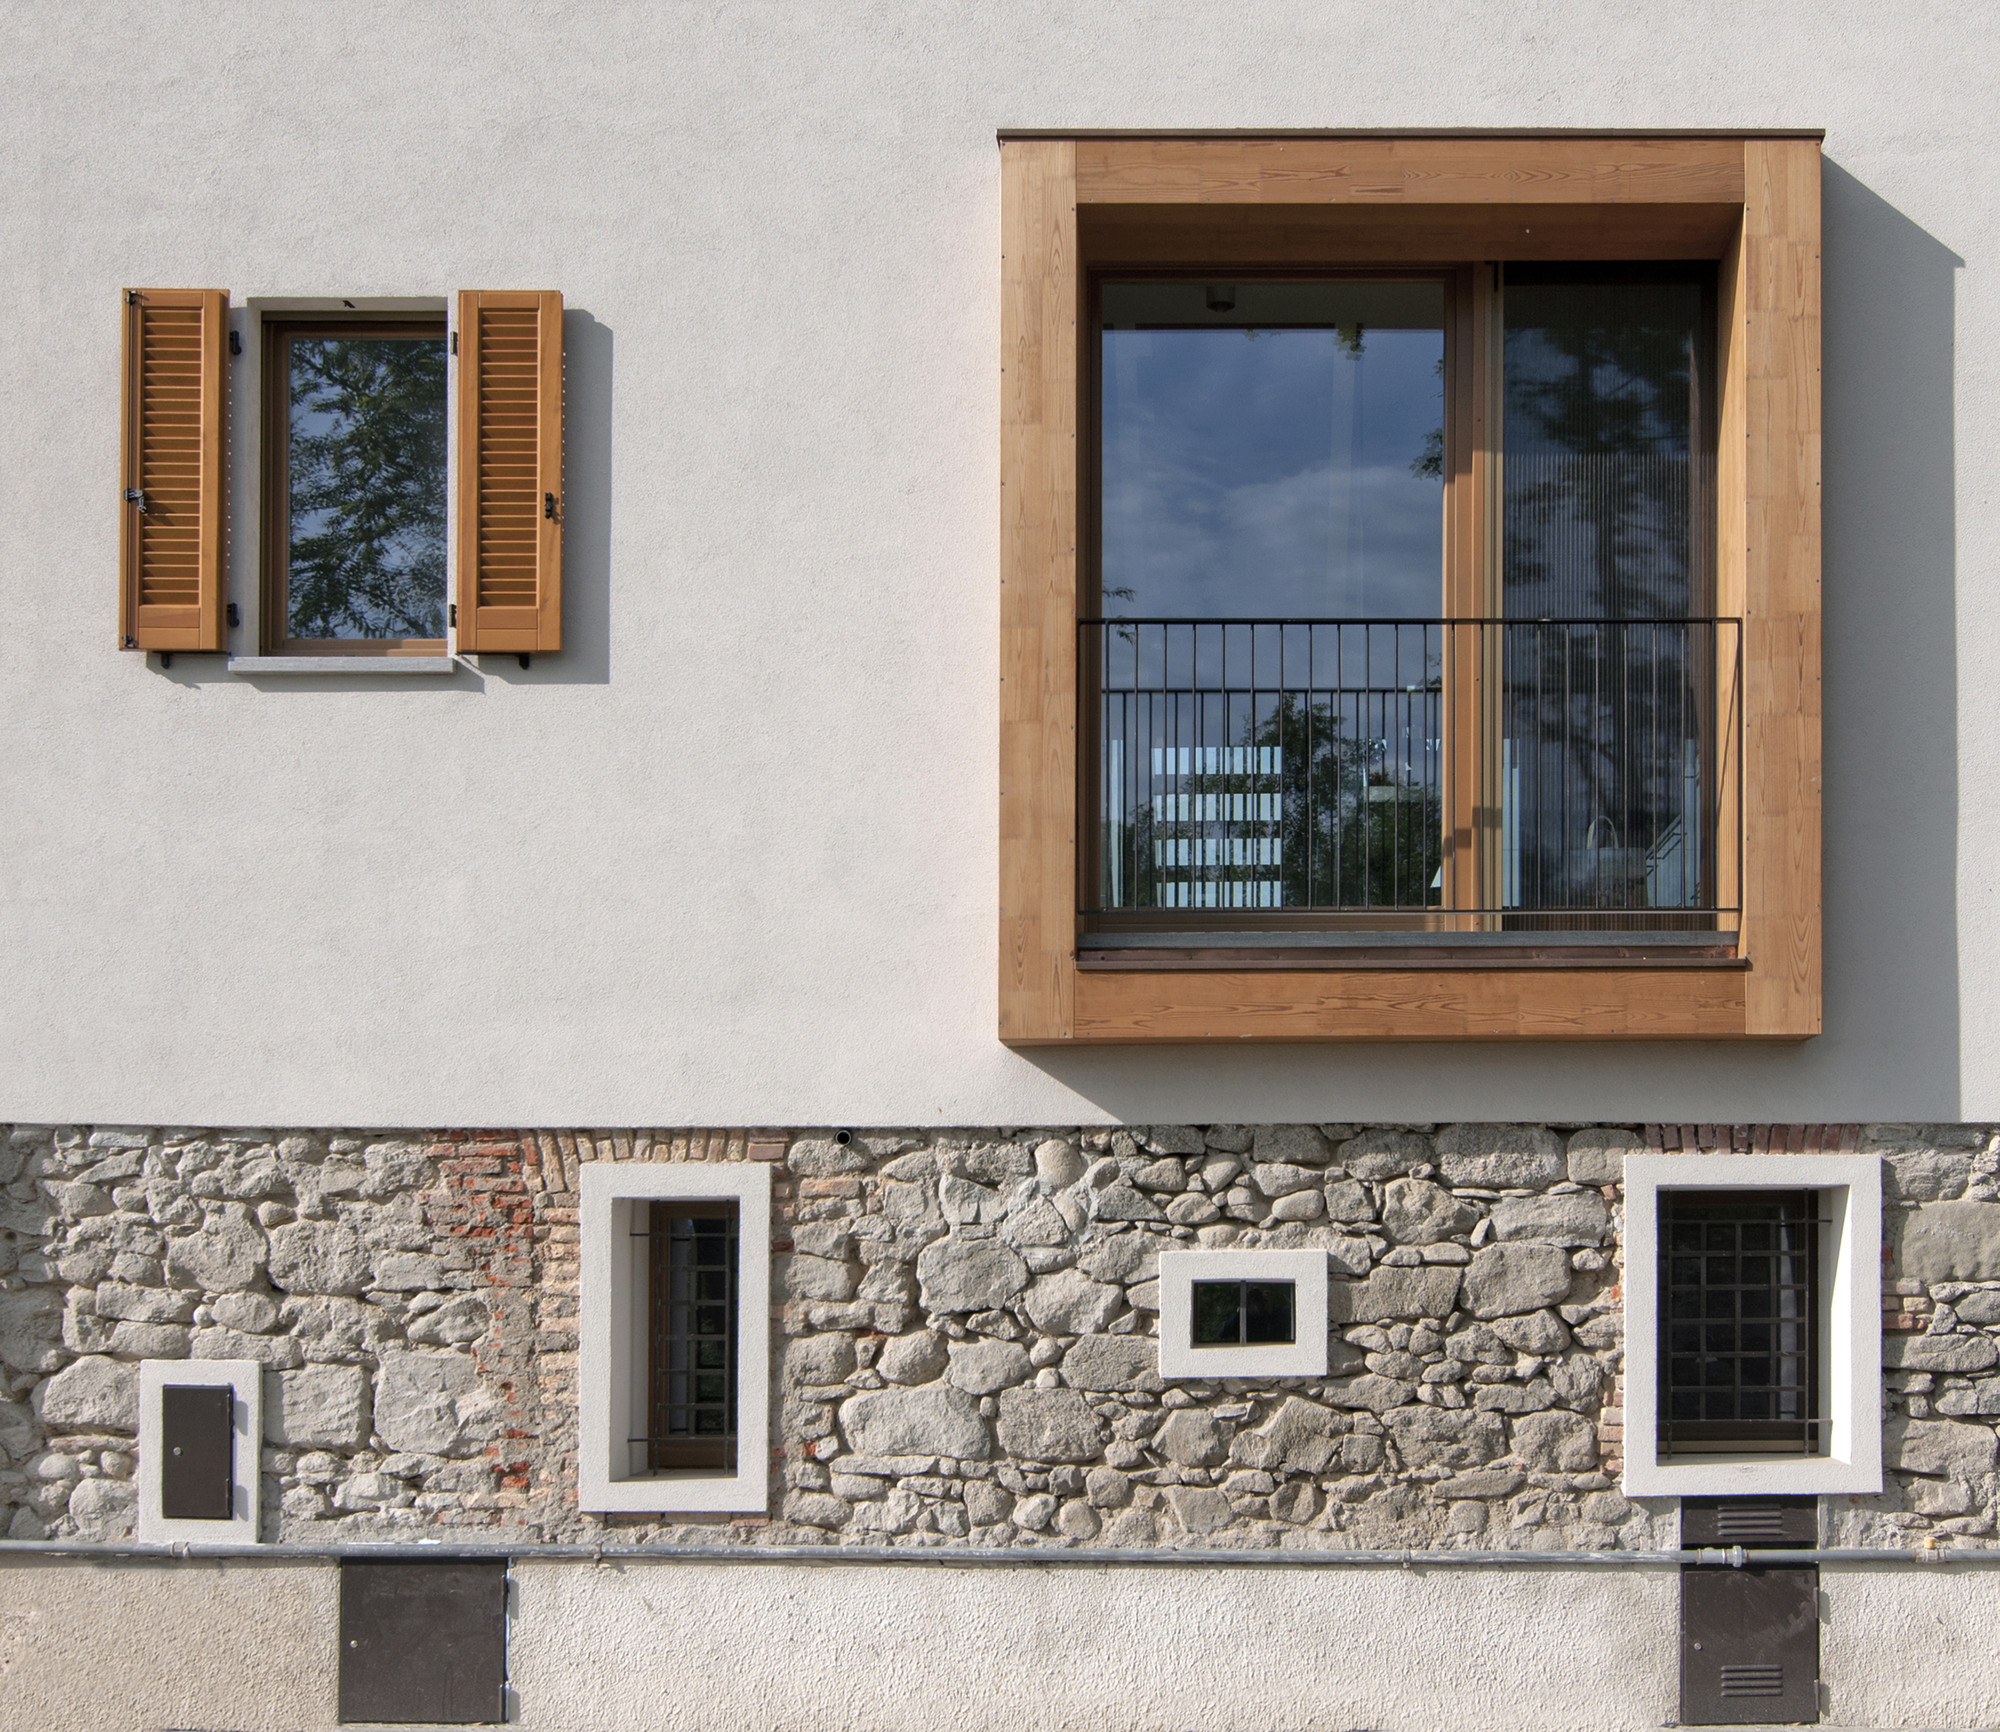 Refurbishment of an Old Barn  / Arcoquattro Architettura, Courtesy of Arcoquattro Architettura